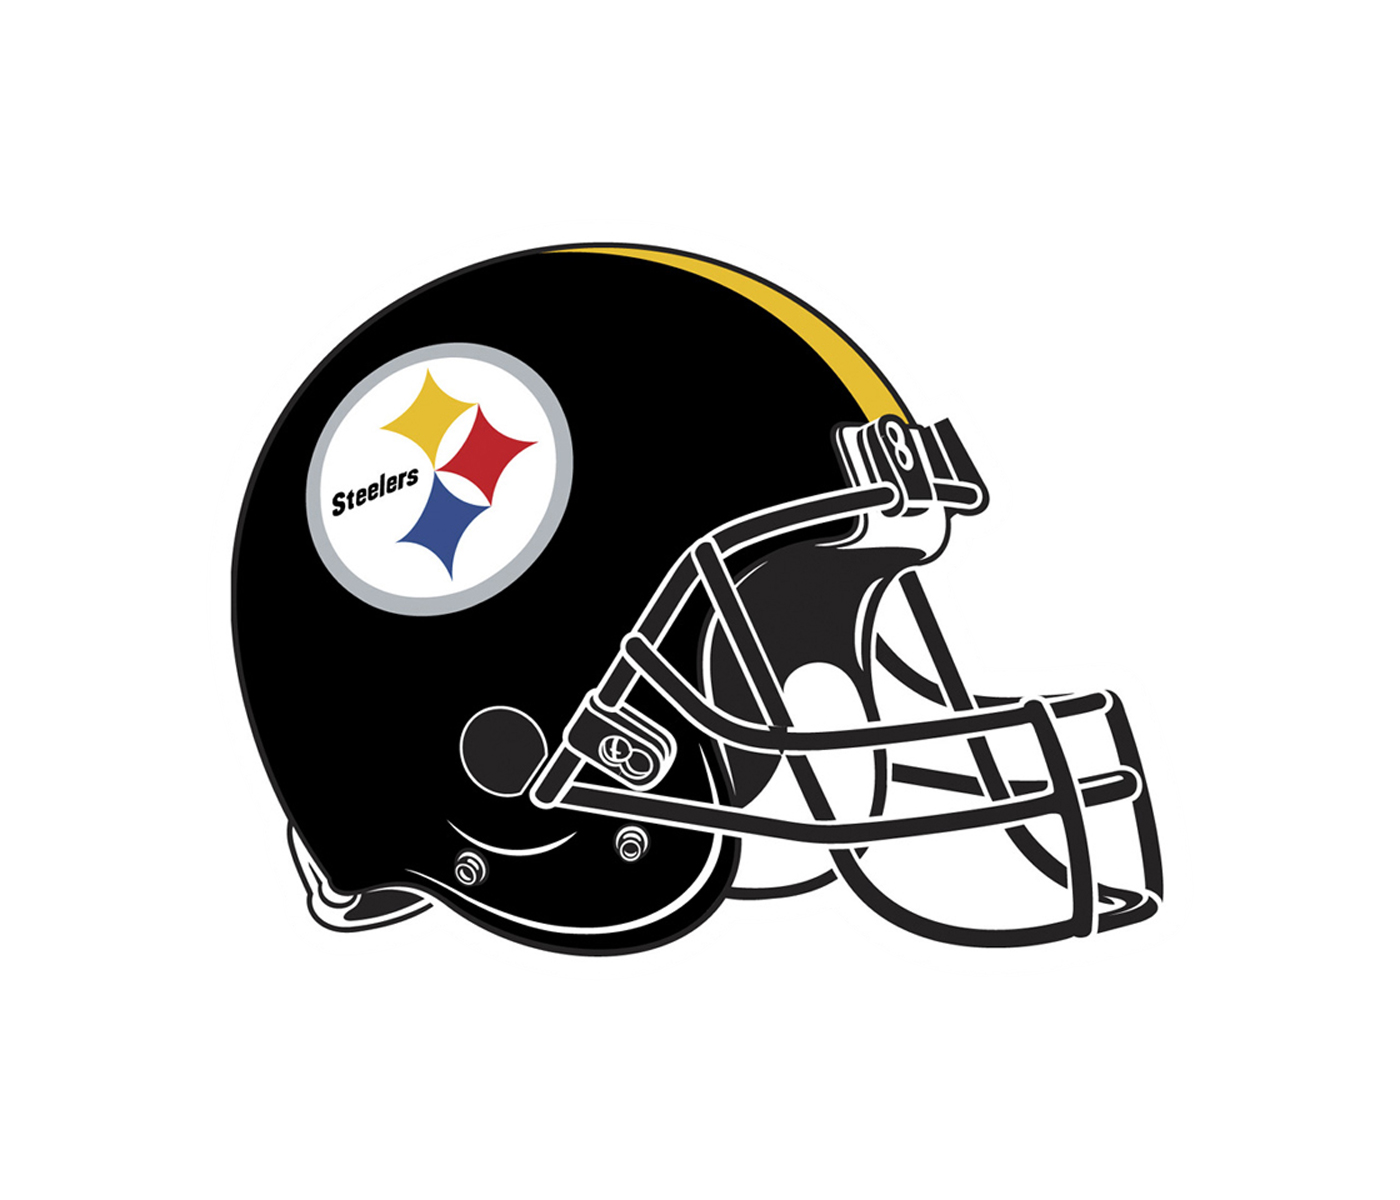 Steelers helmet png. Pittsburgh logo transparent svg